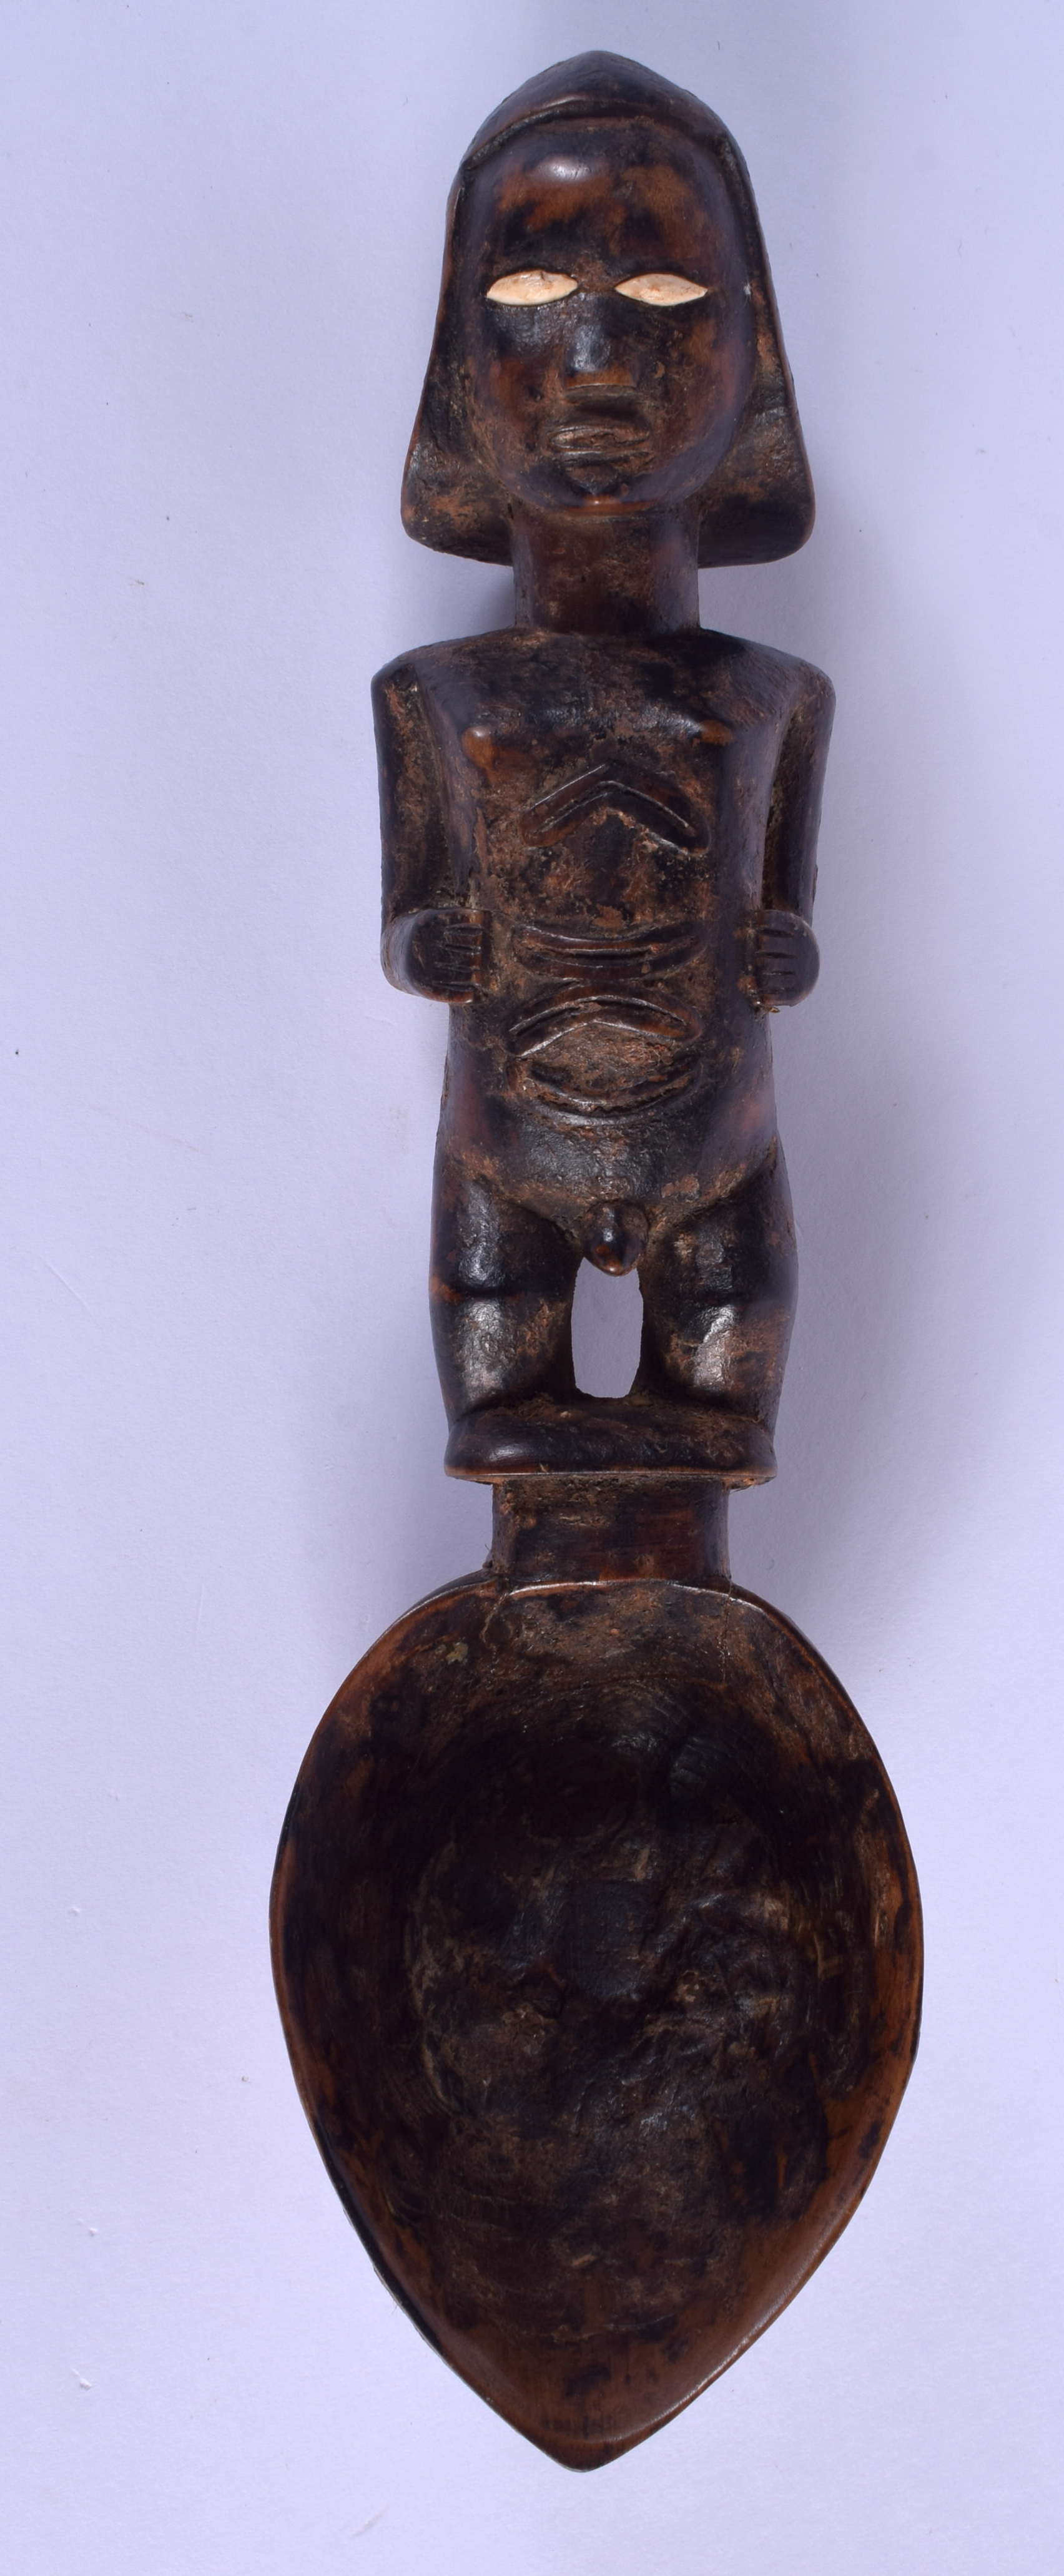 AN AFRICAN TRIBAL COFFEE BEAN EYED CARVED WOOD FIGURAL SPOON. 24 cm long.